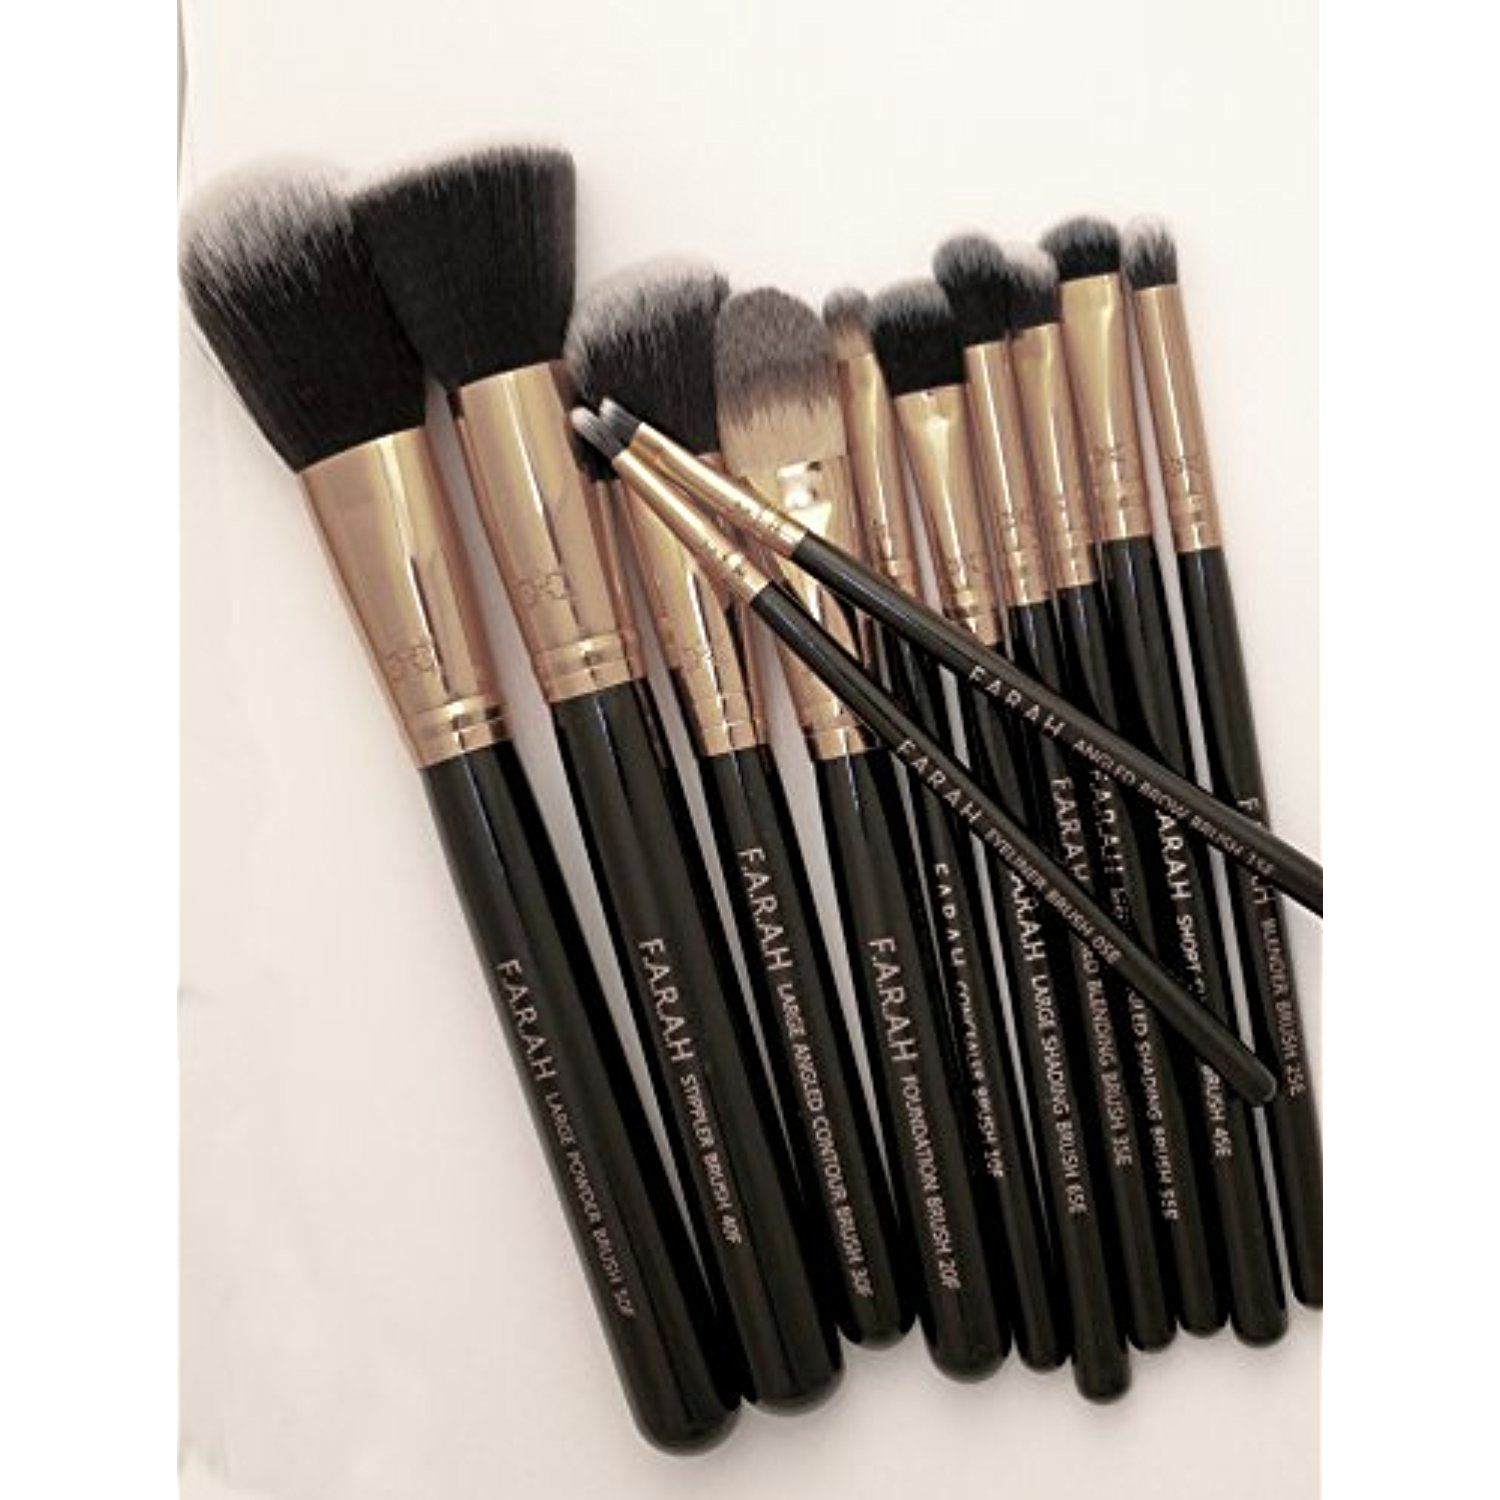 F.A.R.A.H 12 Piece Luxe Makeup Brush Set with Case